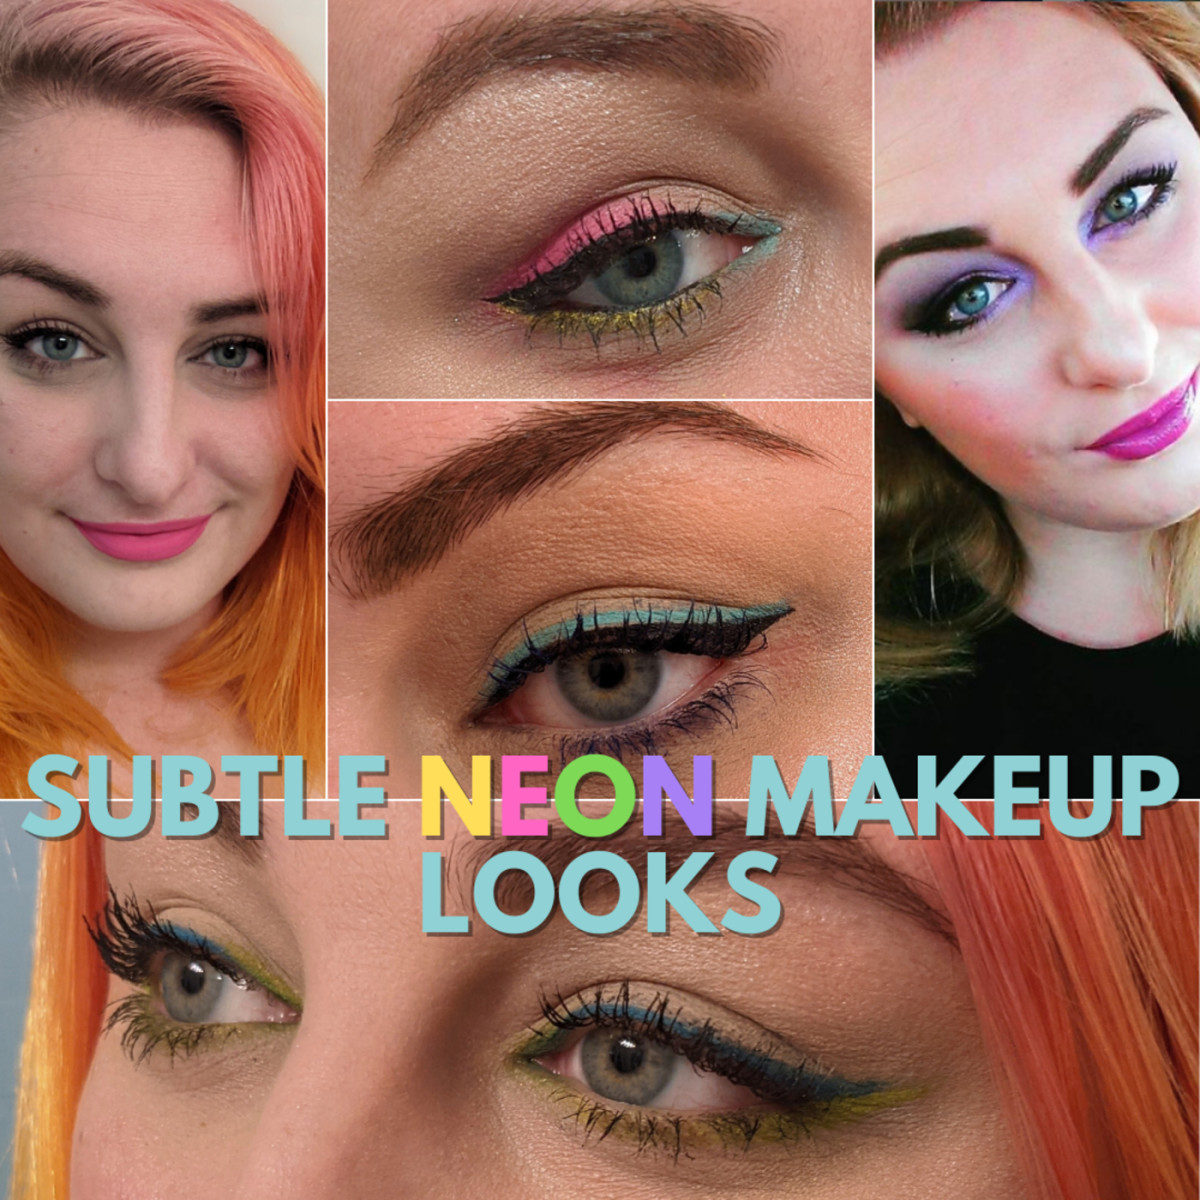 5 Trendy and Subtle Neon Makeup Looks